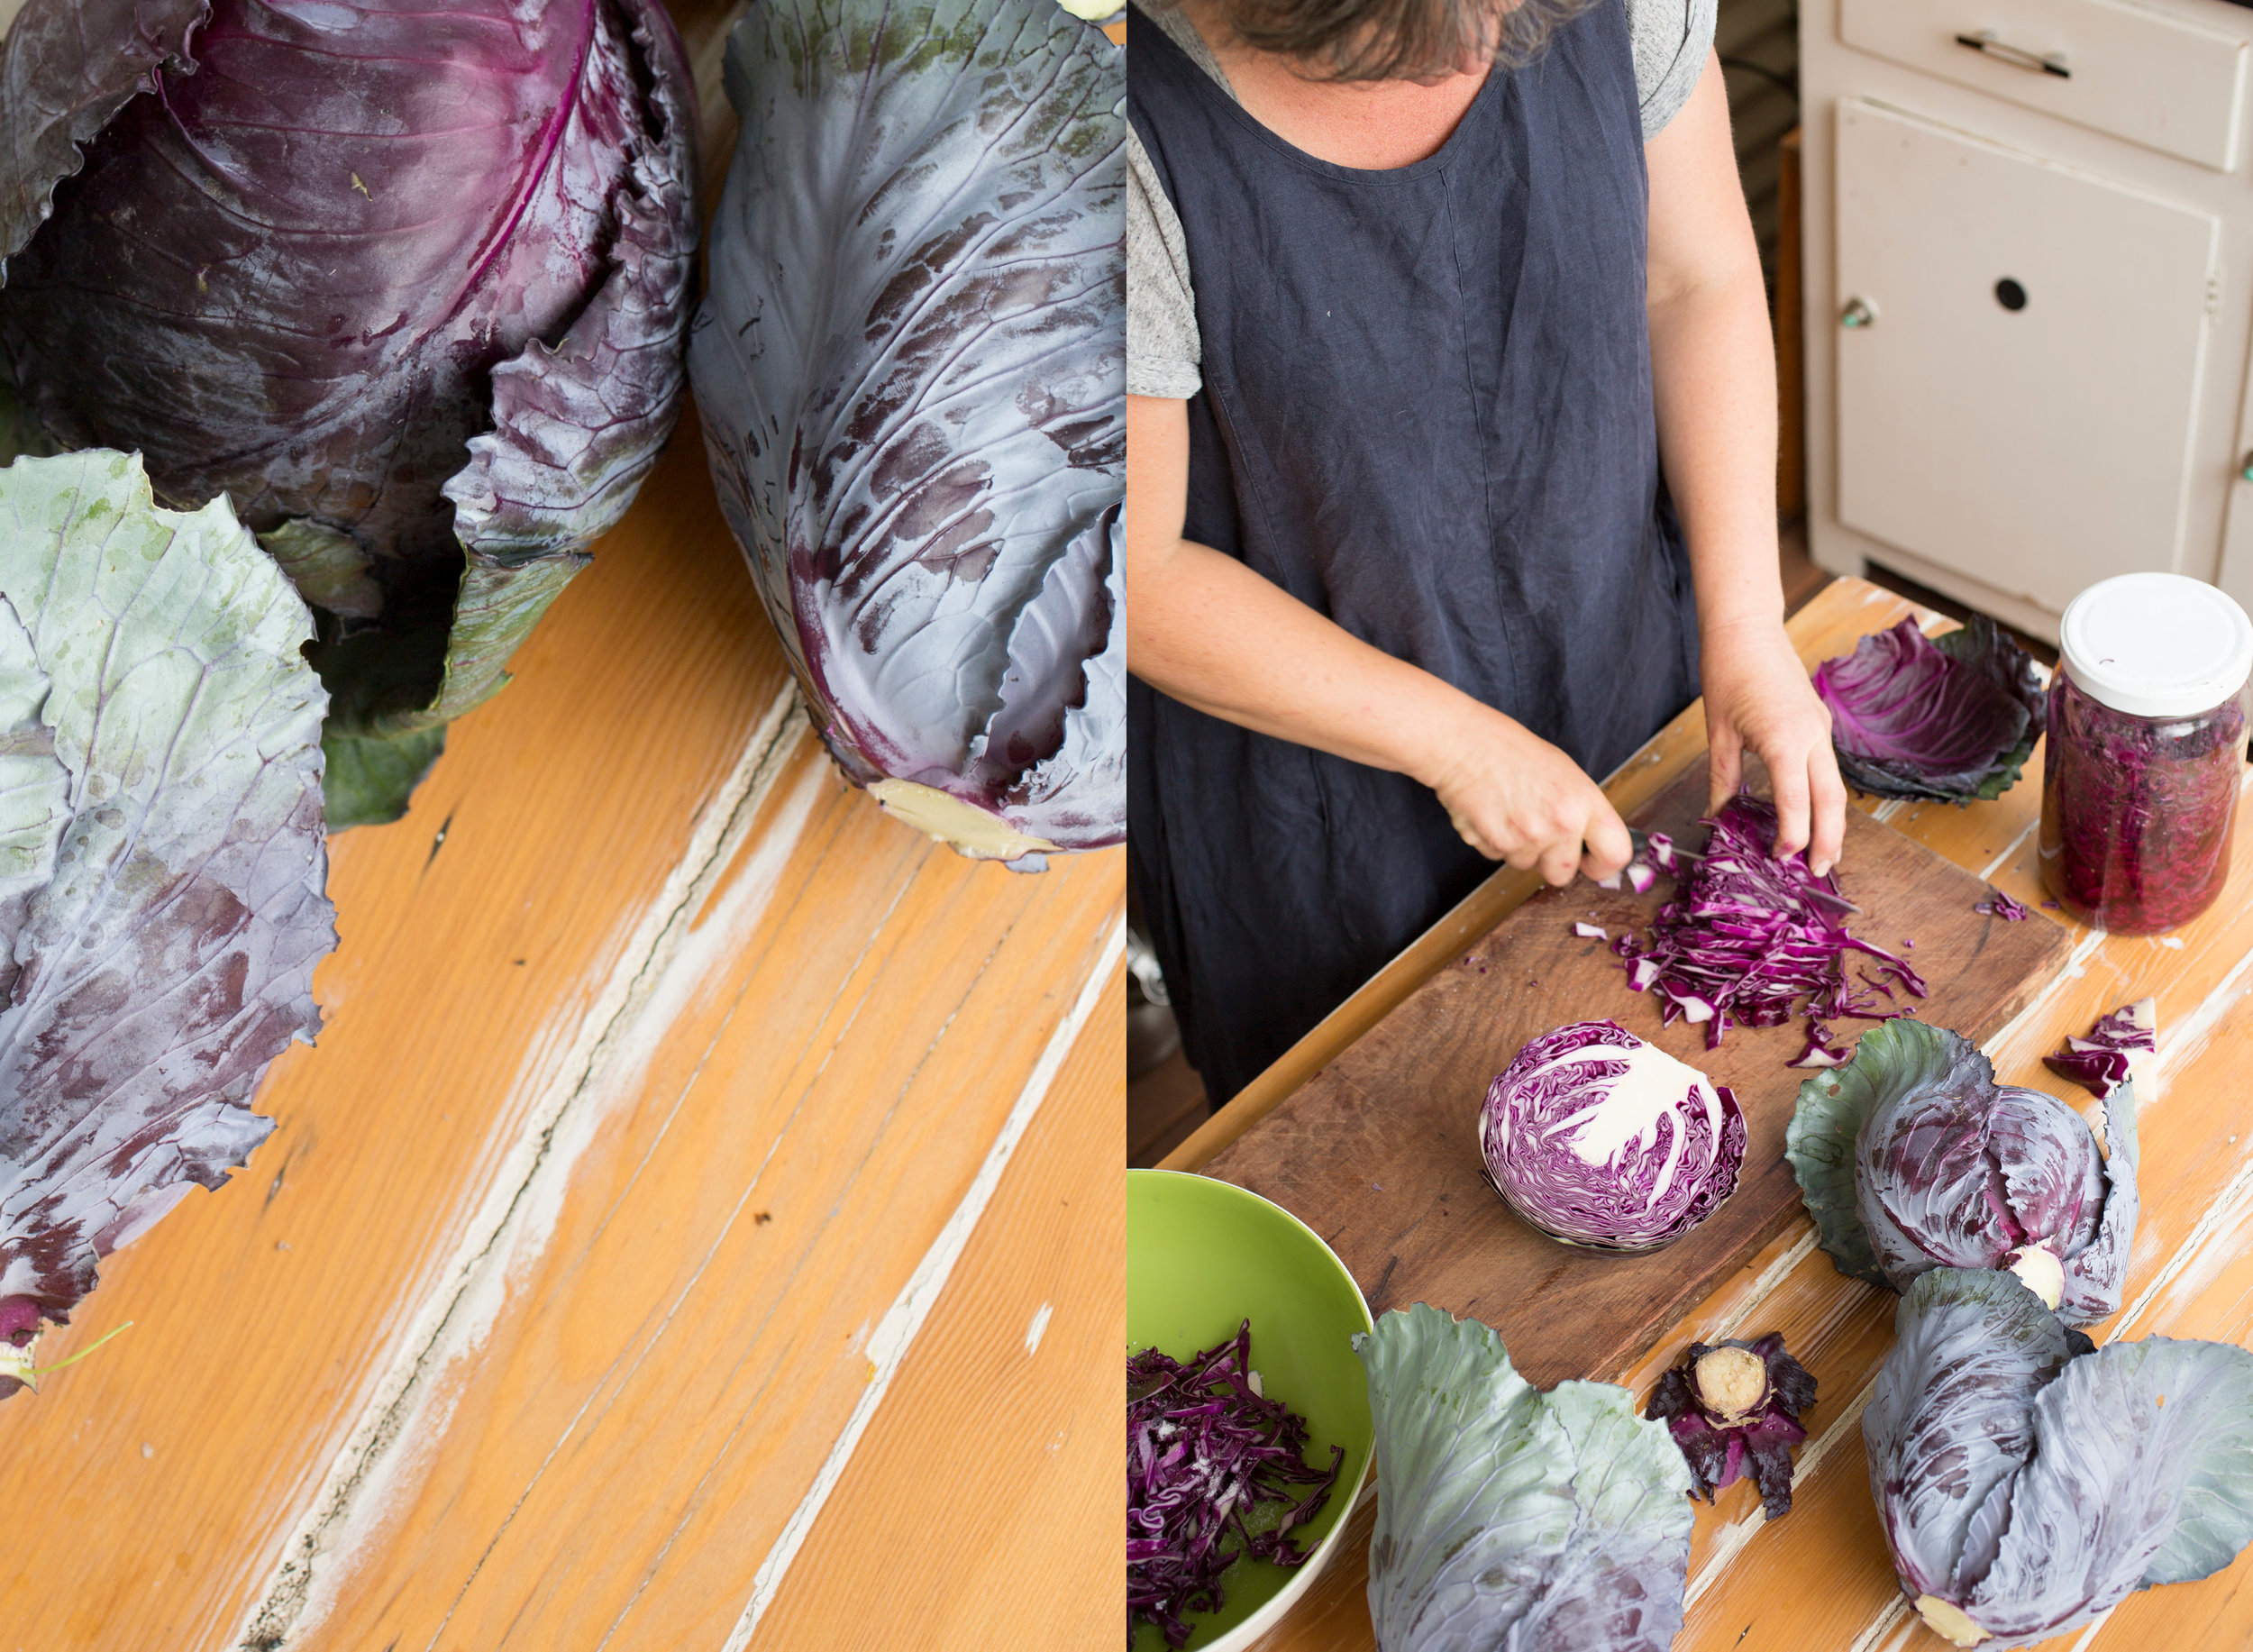 Freshly harvested cabbages from her garden being prepped for a batch of sauerkraut.